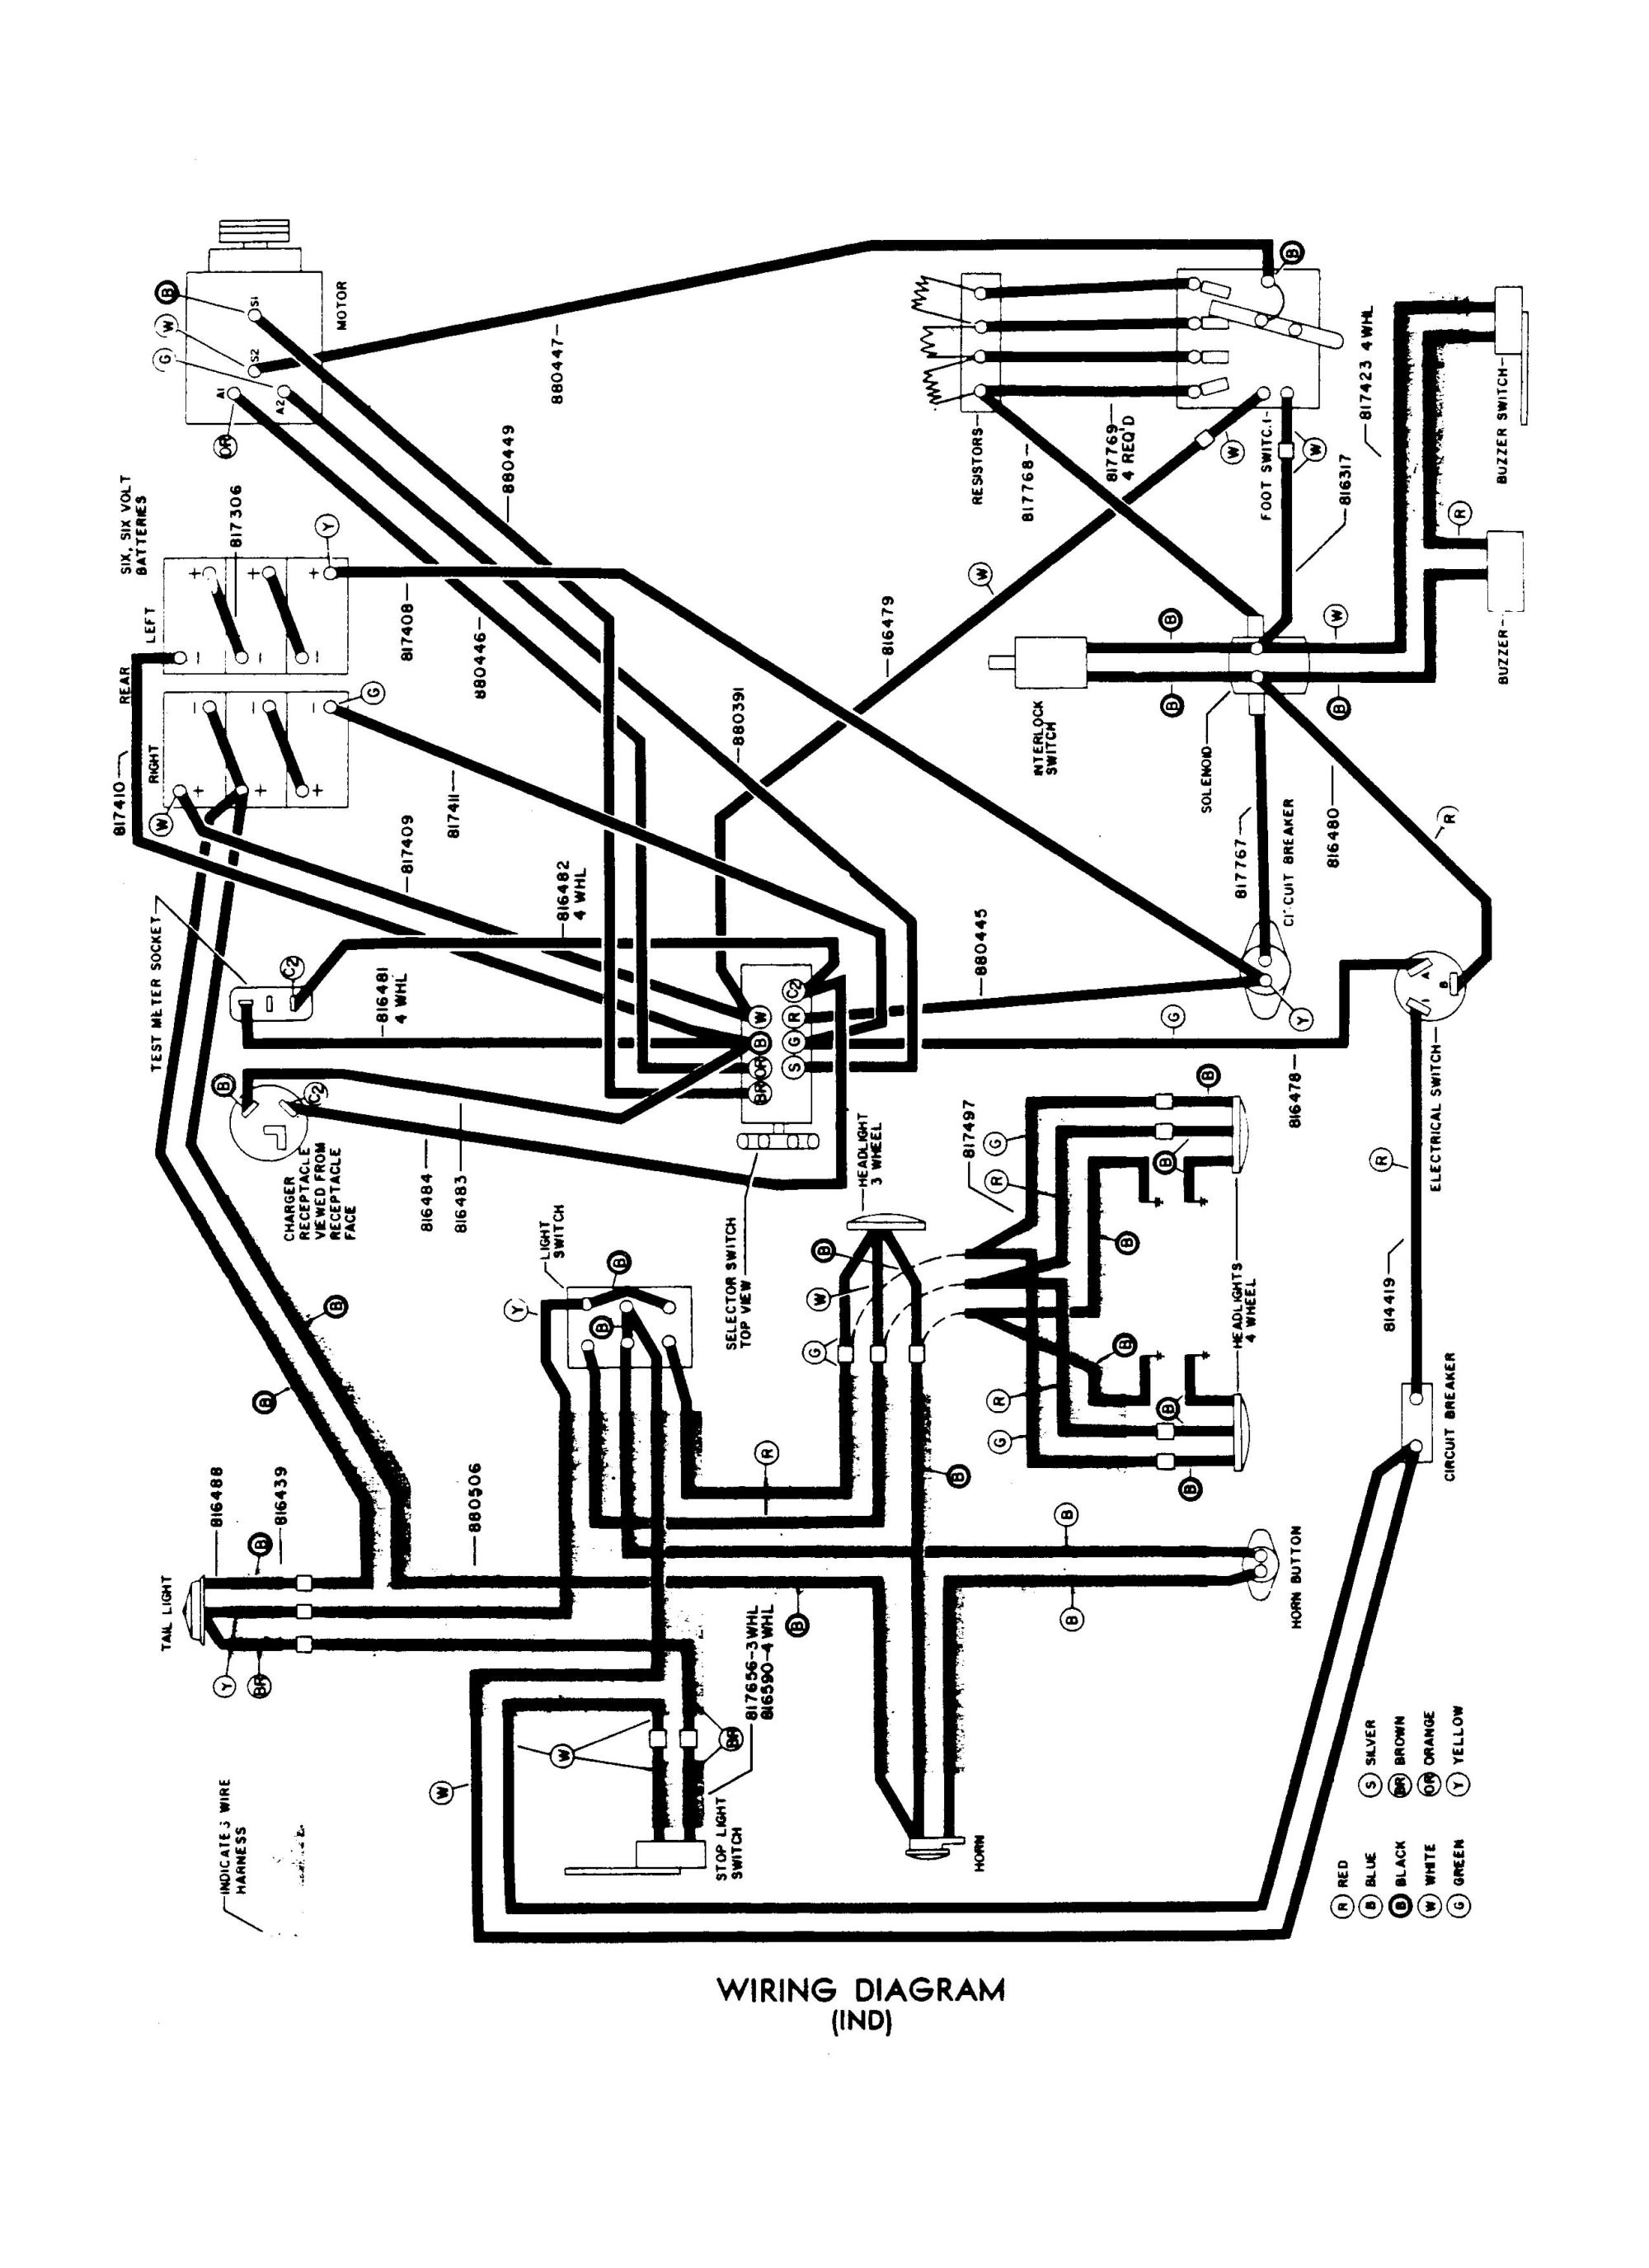 hight resolution of 2550x3507 patent us6367570 hybrid electric vehicle with motor drawing